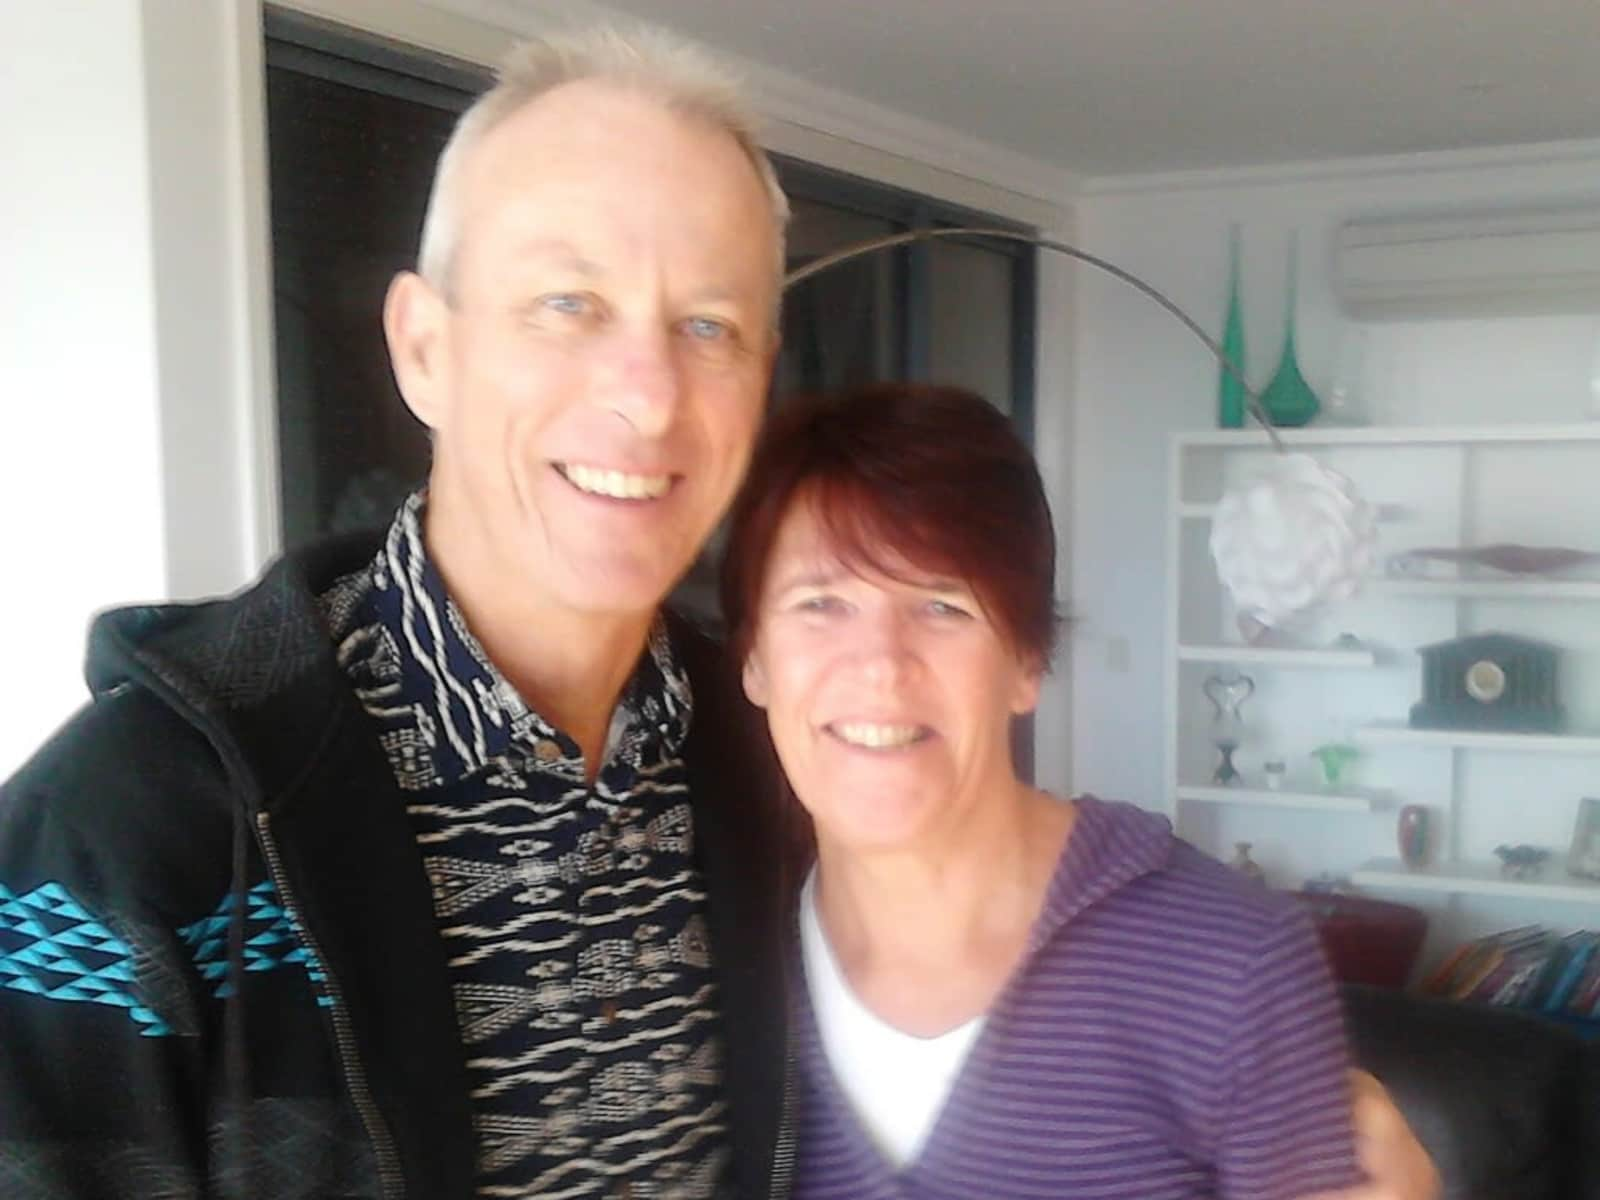 Lesley & Mike from Port Macquarie, New South Wales, Australia